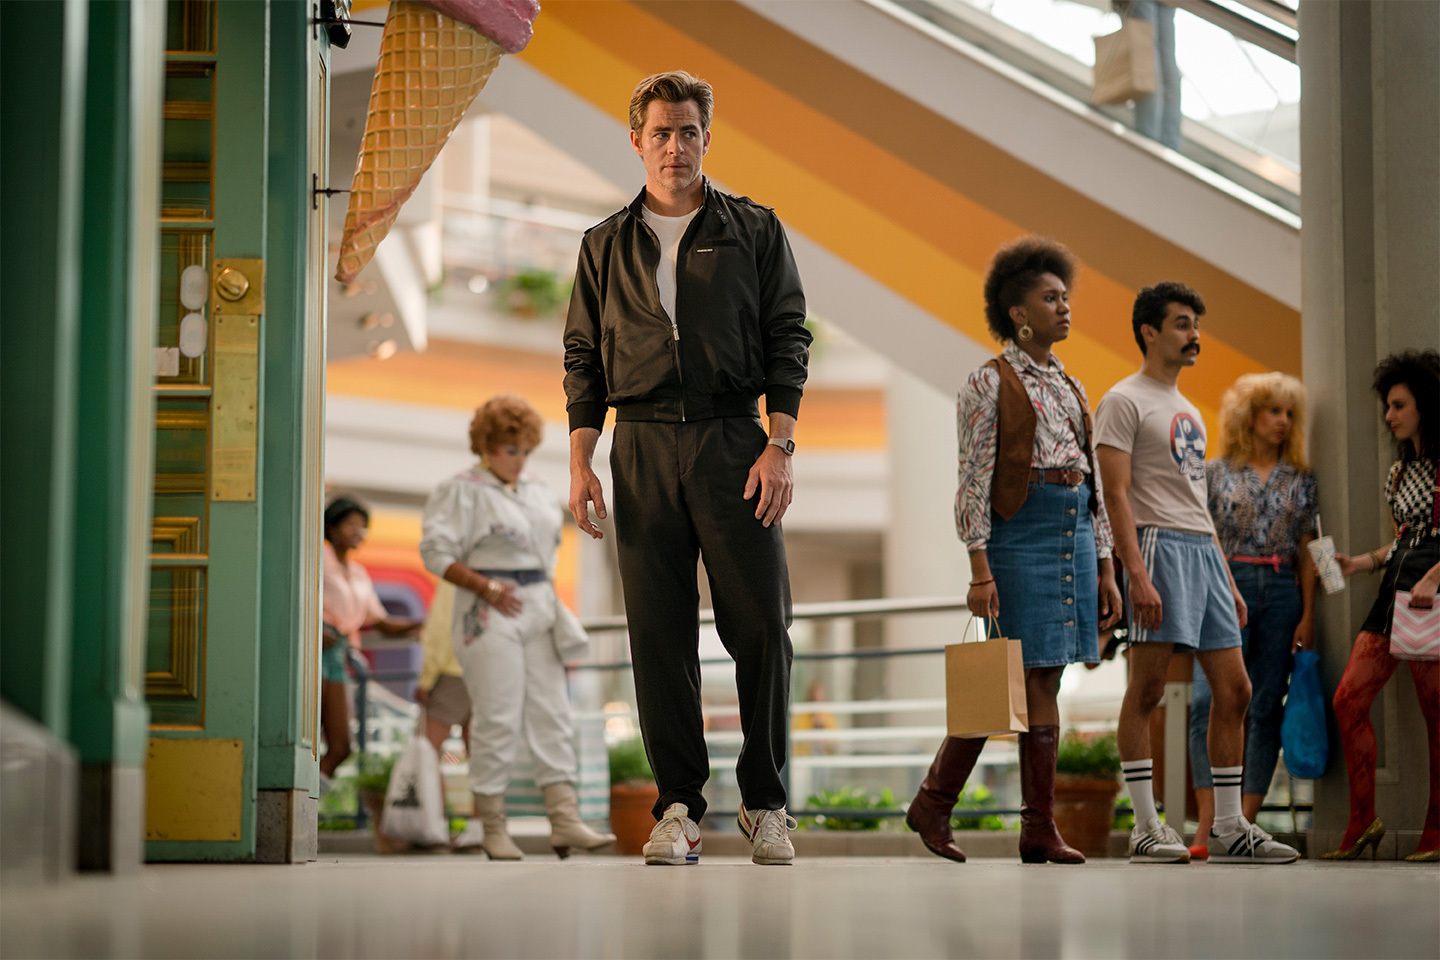 Filming is also slated to take place at the now defunct Landmark Mall in Alexandria, and the film's director tweeted this image on June 13 of Chris Pine in the mall. (Image: